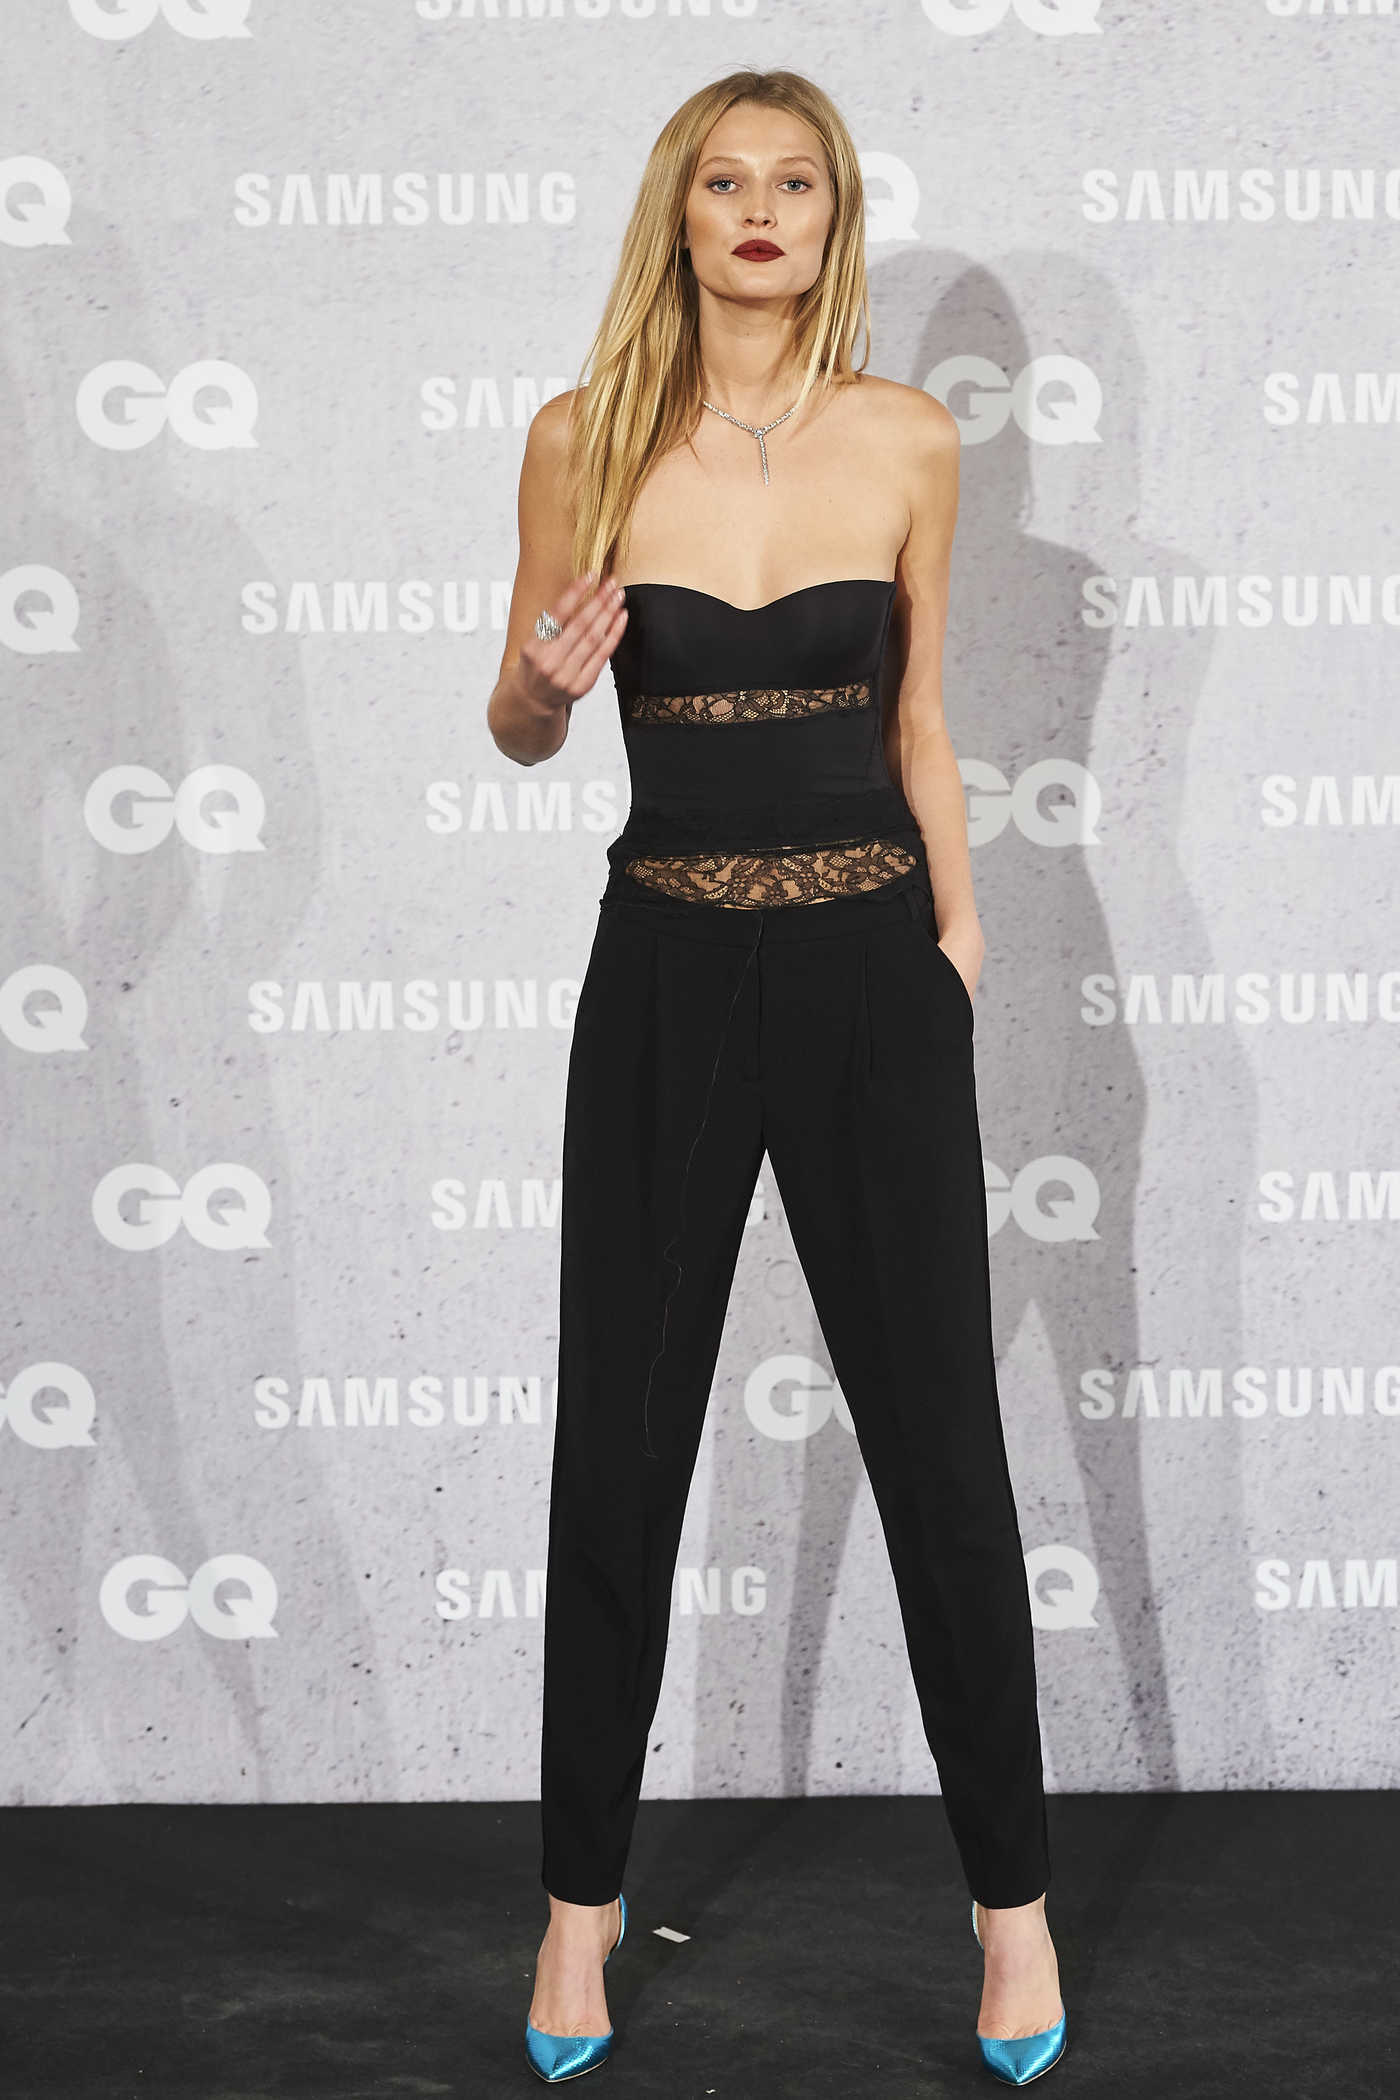 Toni Garrn at the GQ Men of the Year Awards in Madrid 11/03/2016